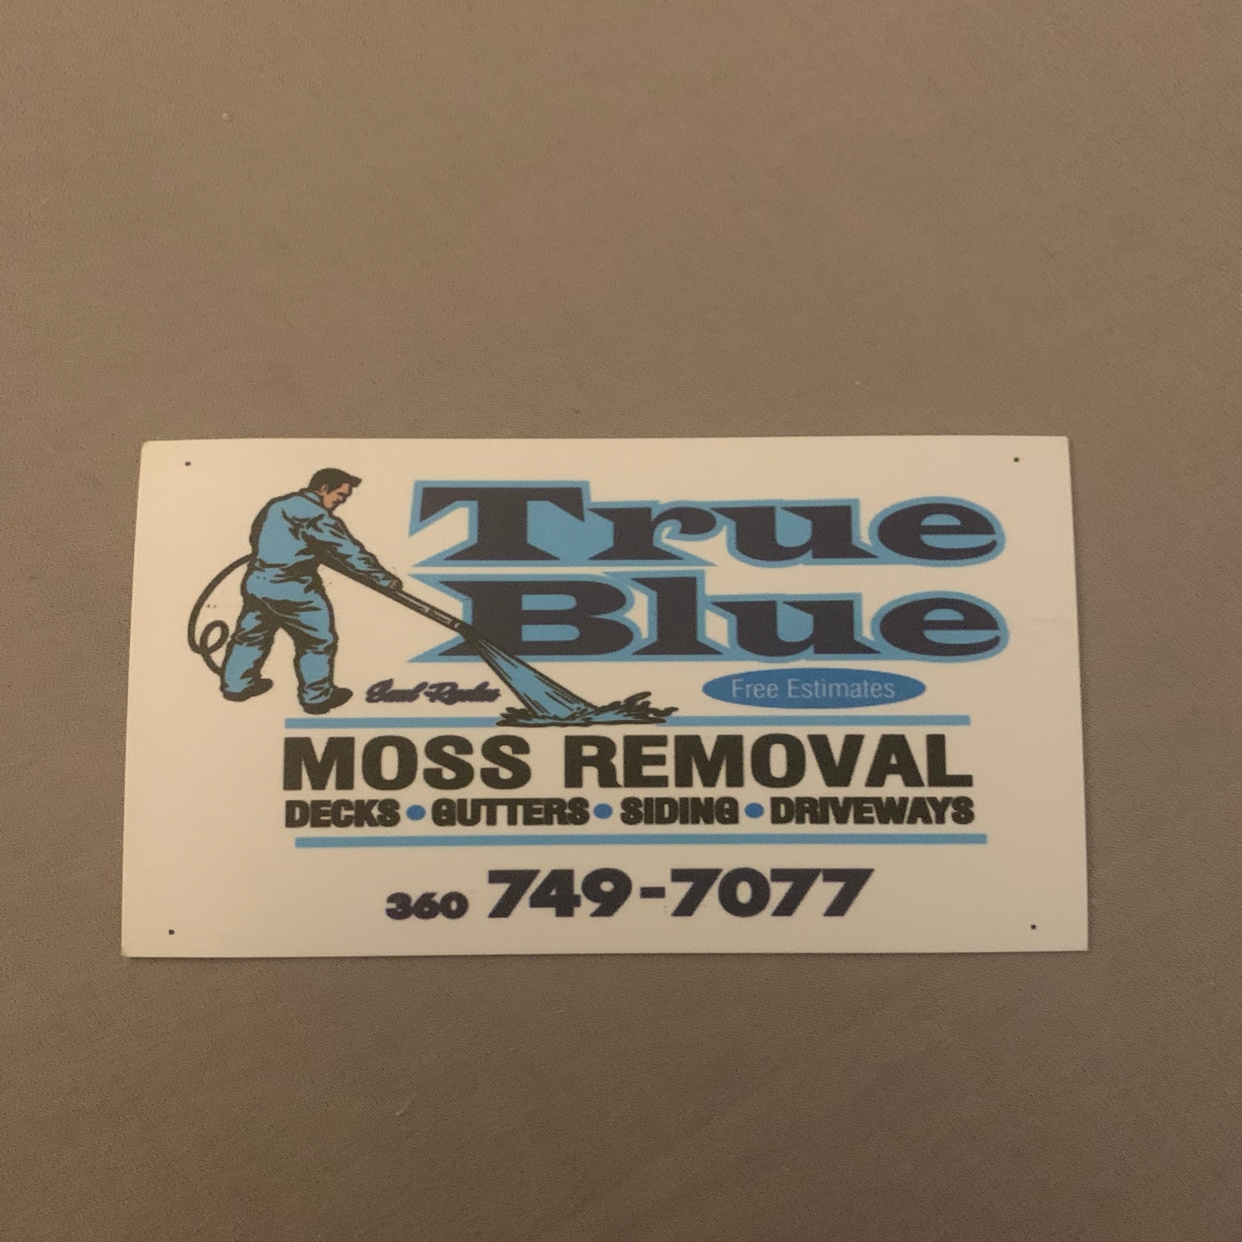 True Blue Moss Removal